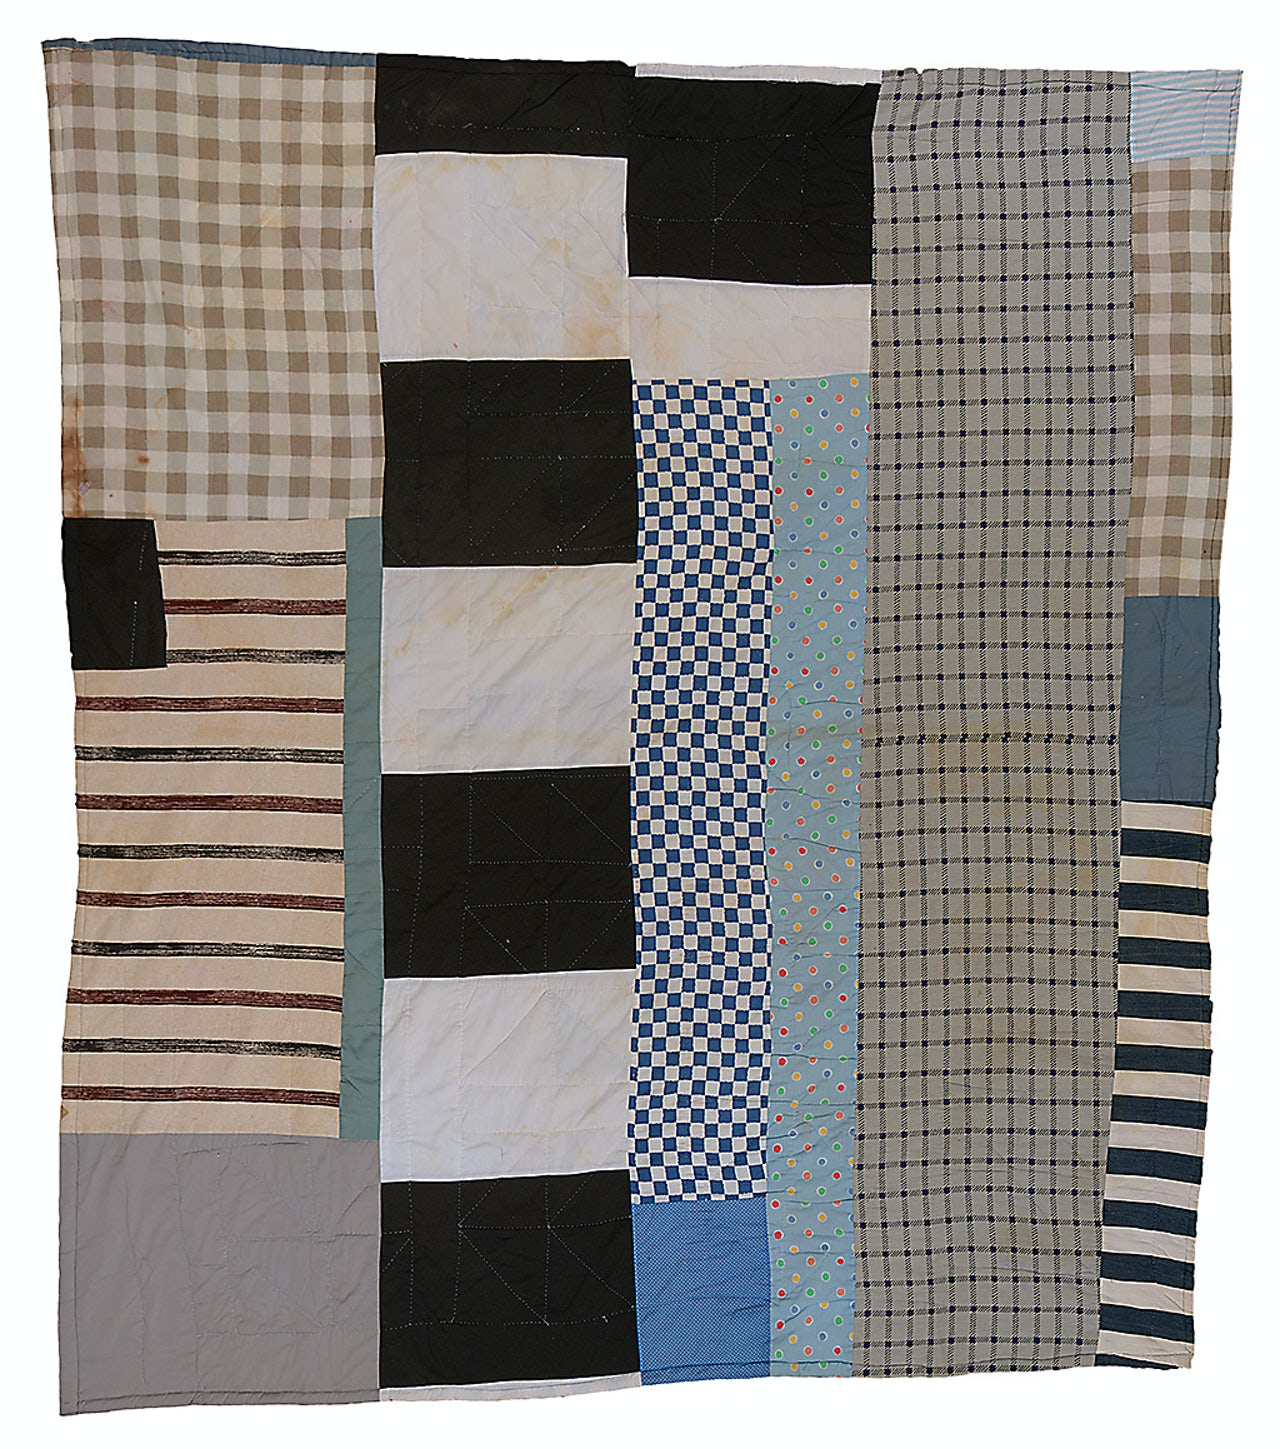 "Pettway, Allie (1916-2010). Two-sided quilt ""Pinwheel"" variation, and blocks and strips. C. 1975, cotton and cotton/polyester blend, 88 x 80 in."